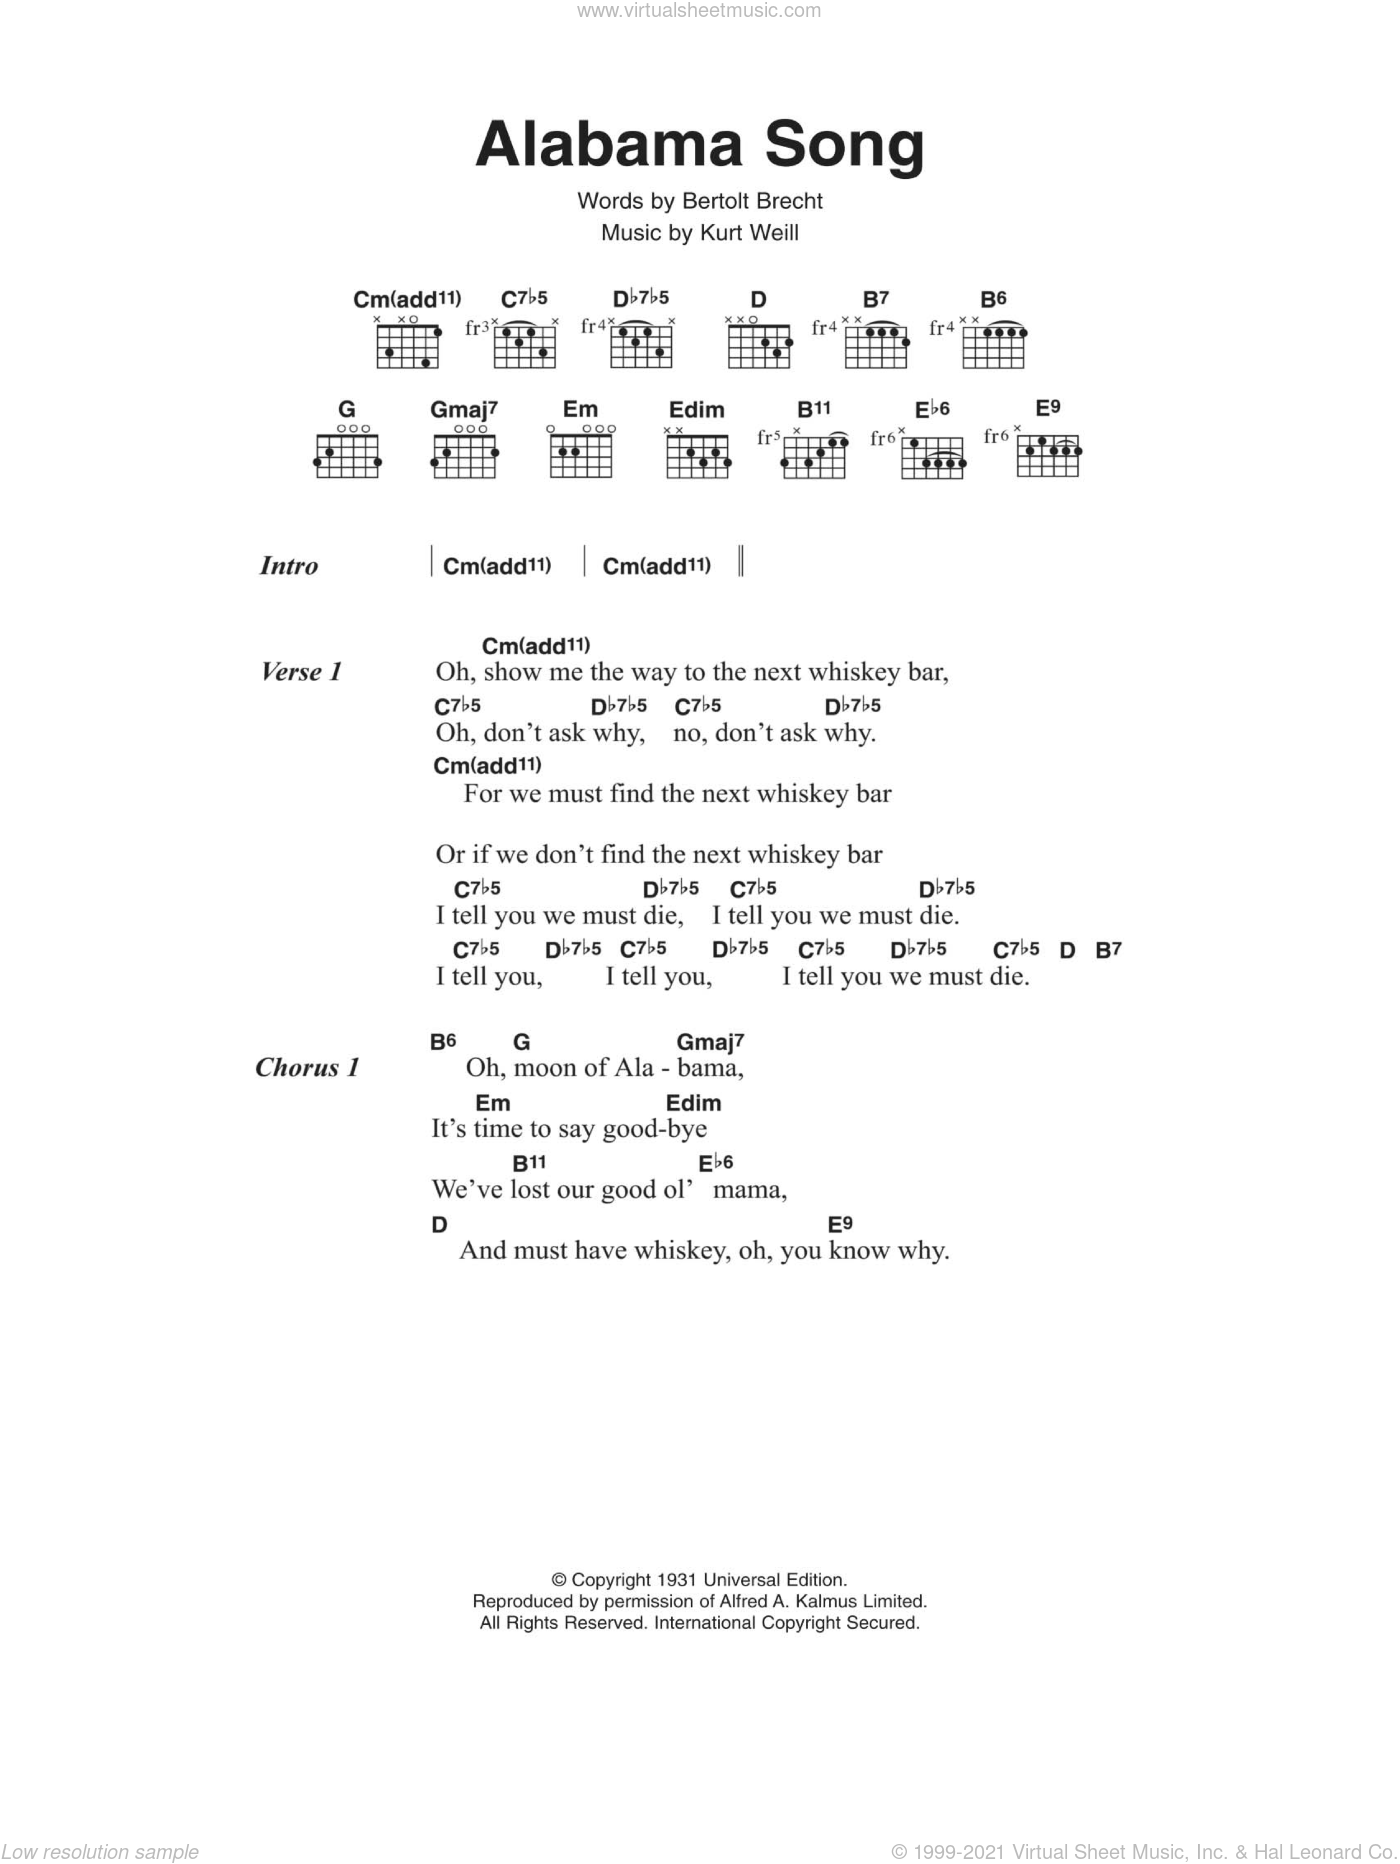 Alabama Song sheet music for guitar (chords) by David Bowie, Bertolt Brecht and Kurt Weill, intermediate skill level